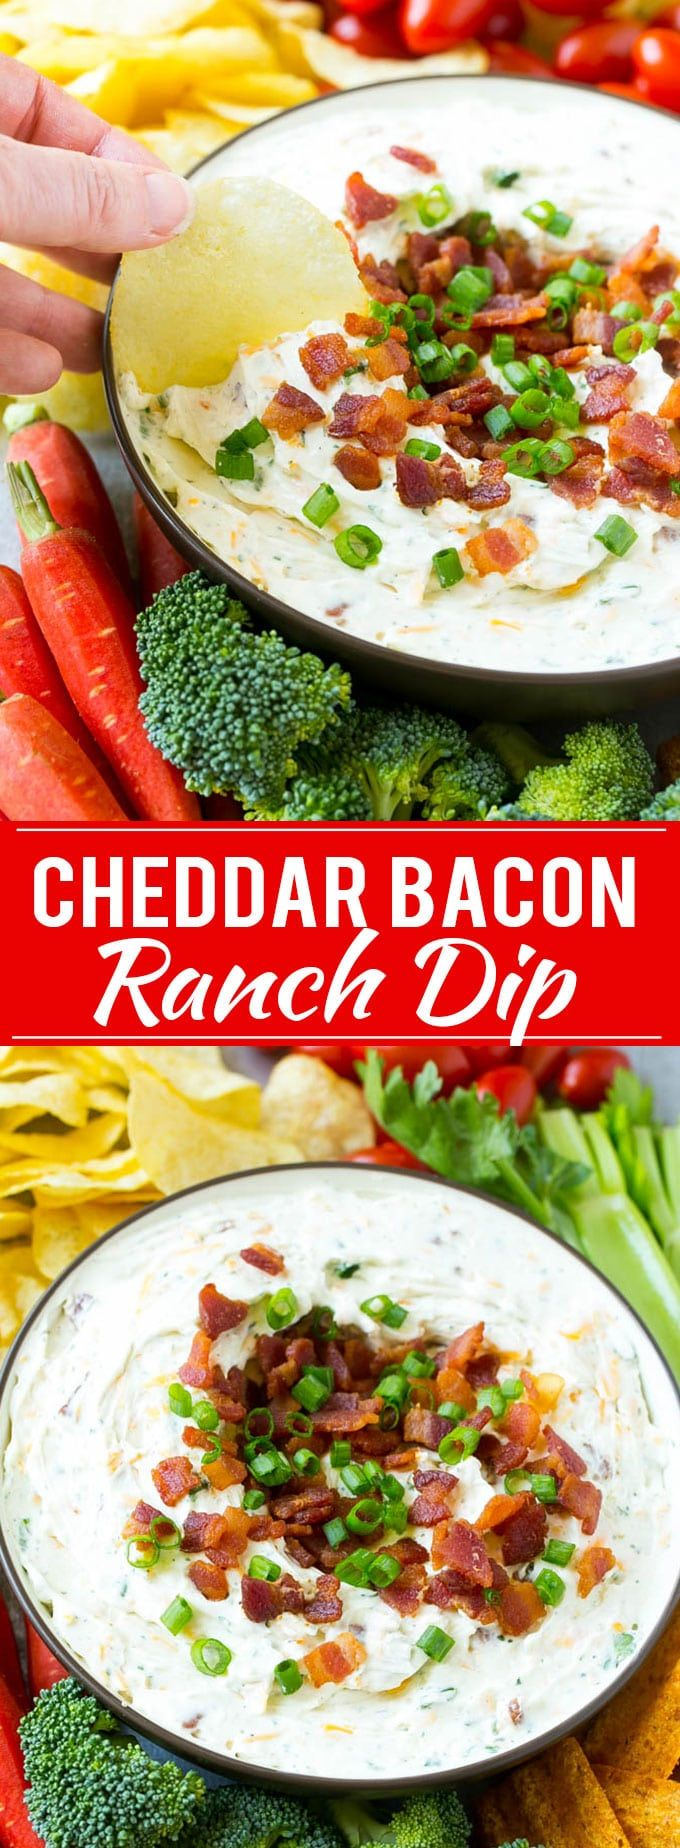 Bacon Ranch Dip Recipe -  takes just 5 minutes to make and is loaded with flavor.